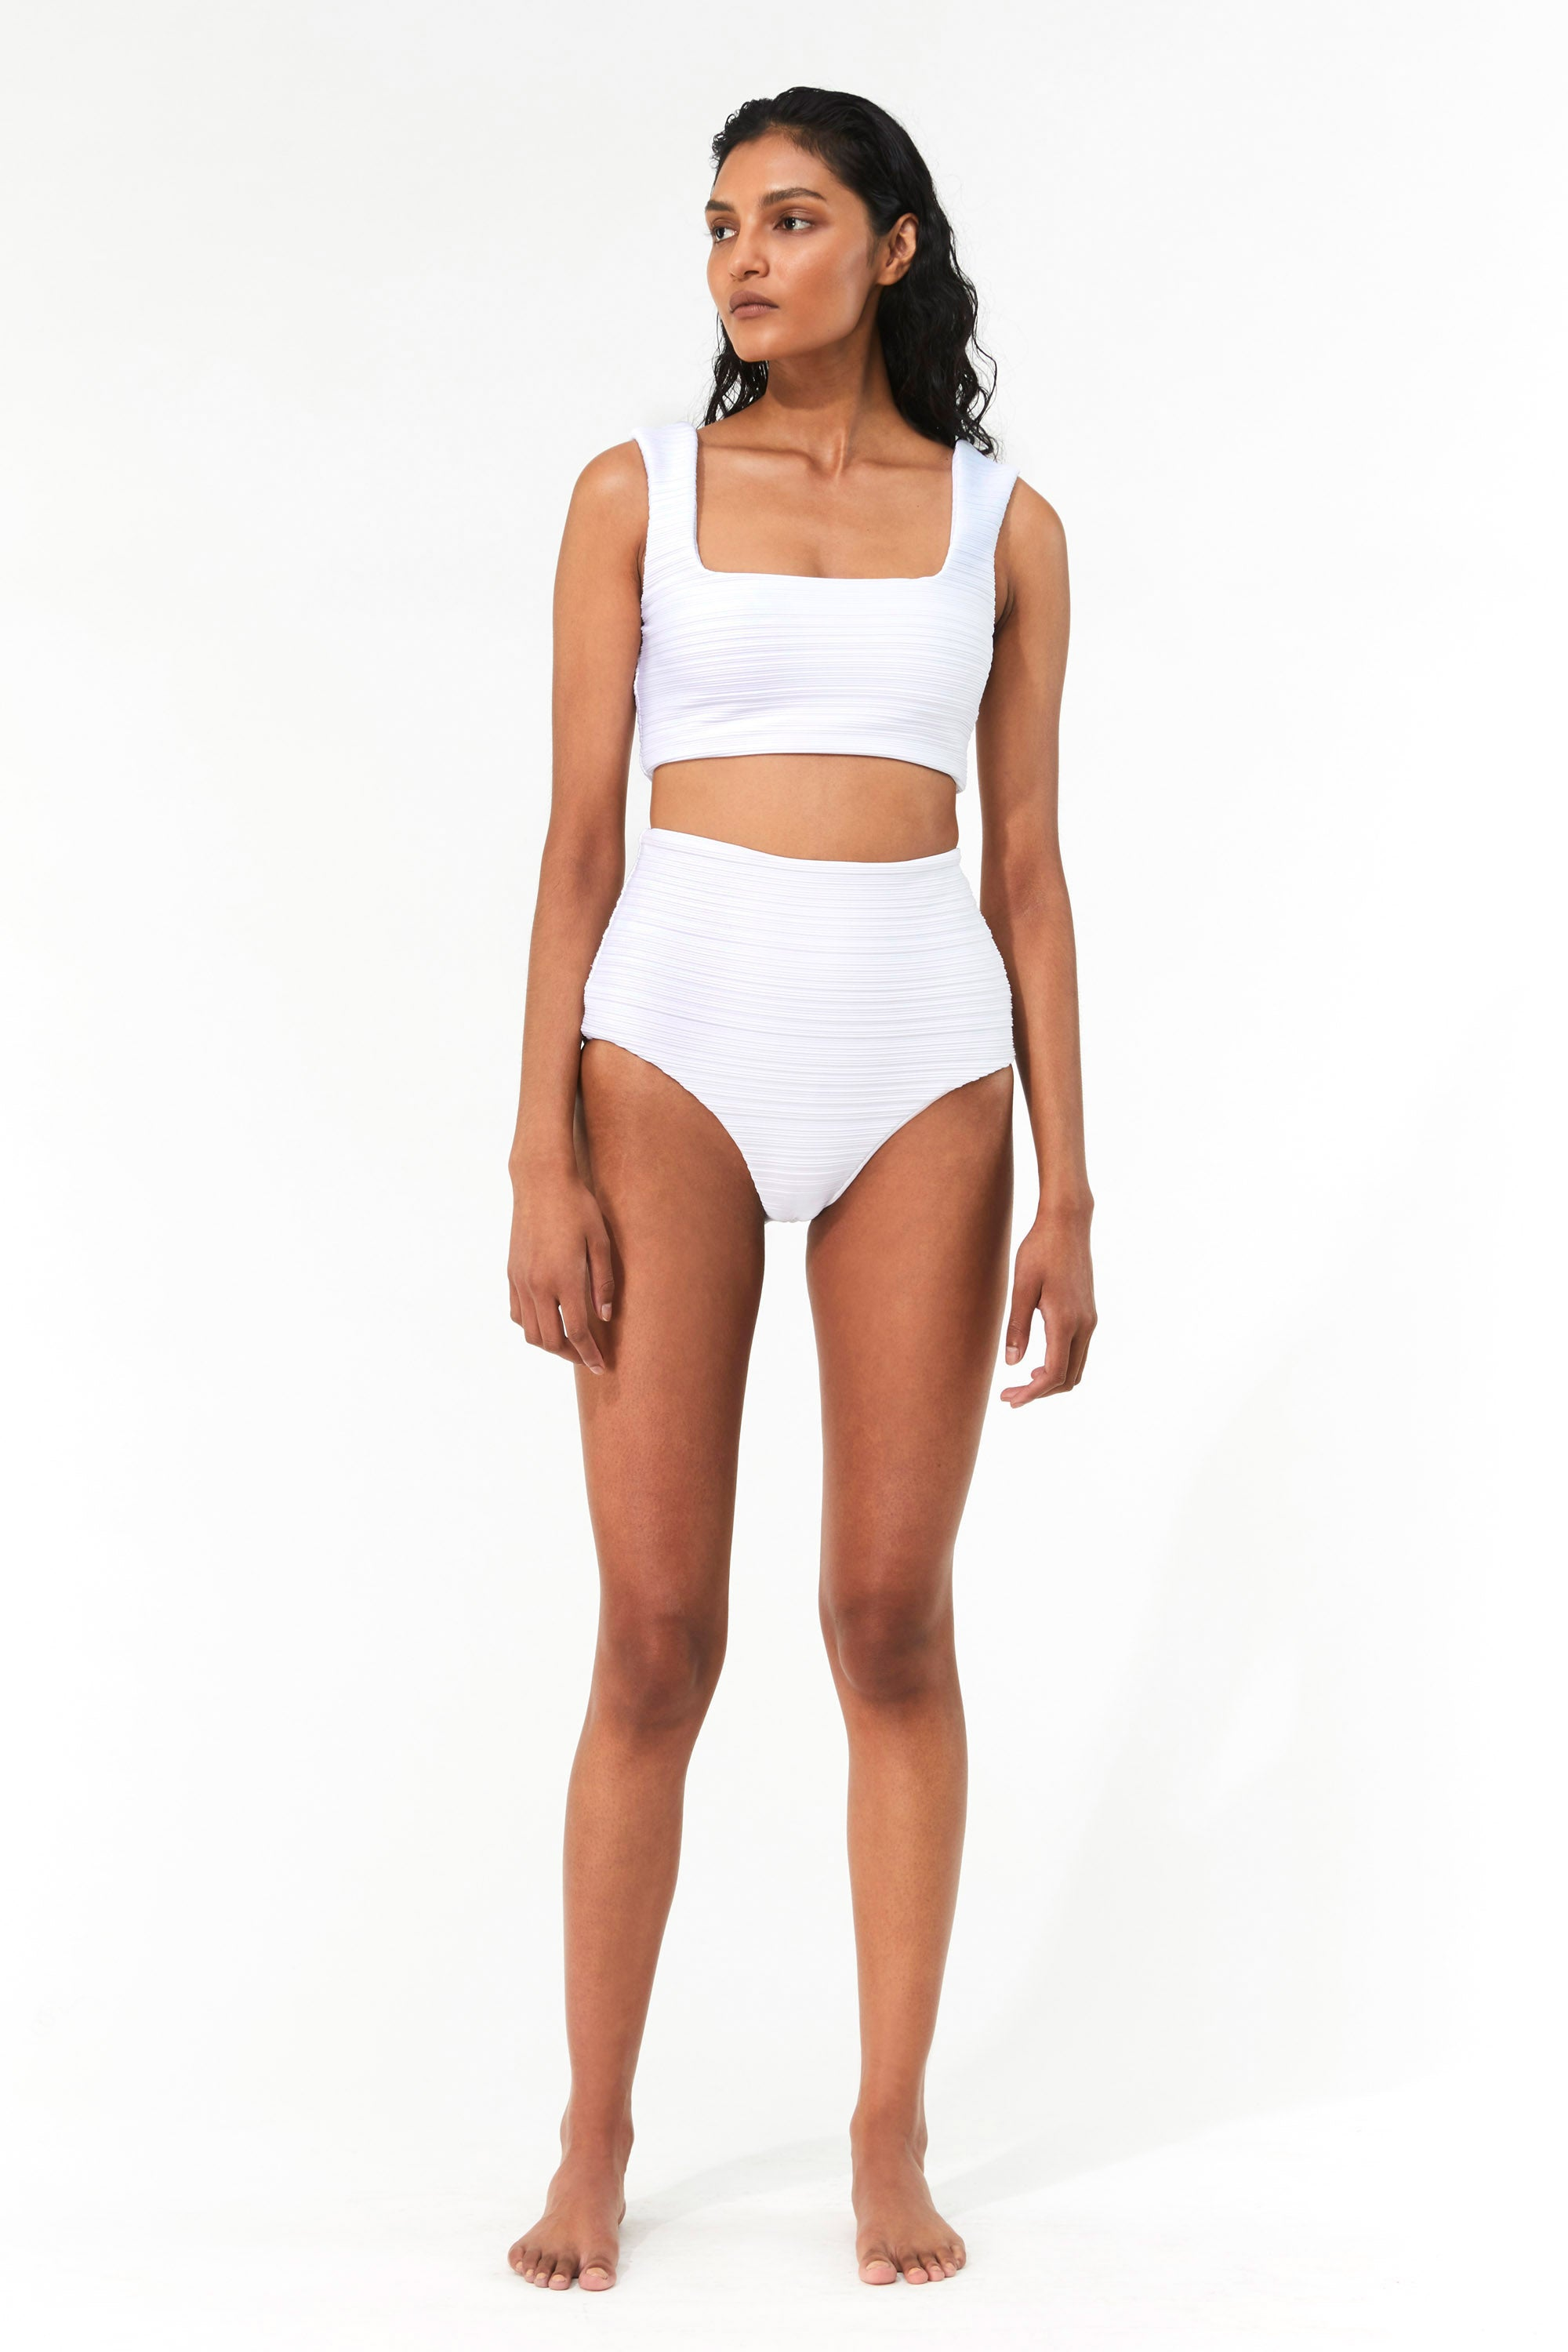 Mara Hoffman White Raina Bikini Top in Repreve (front)